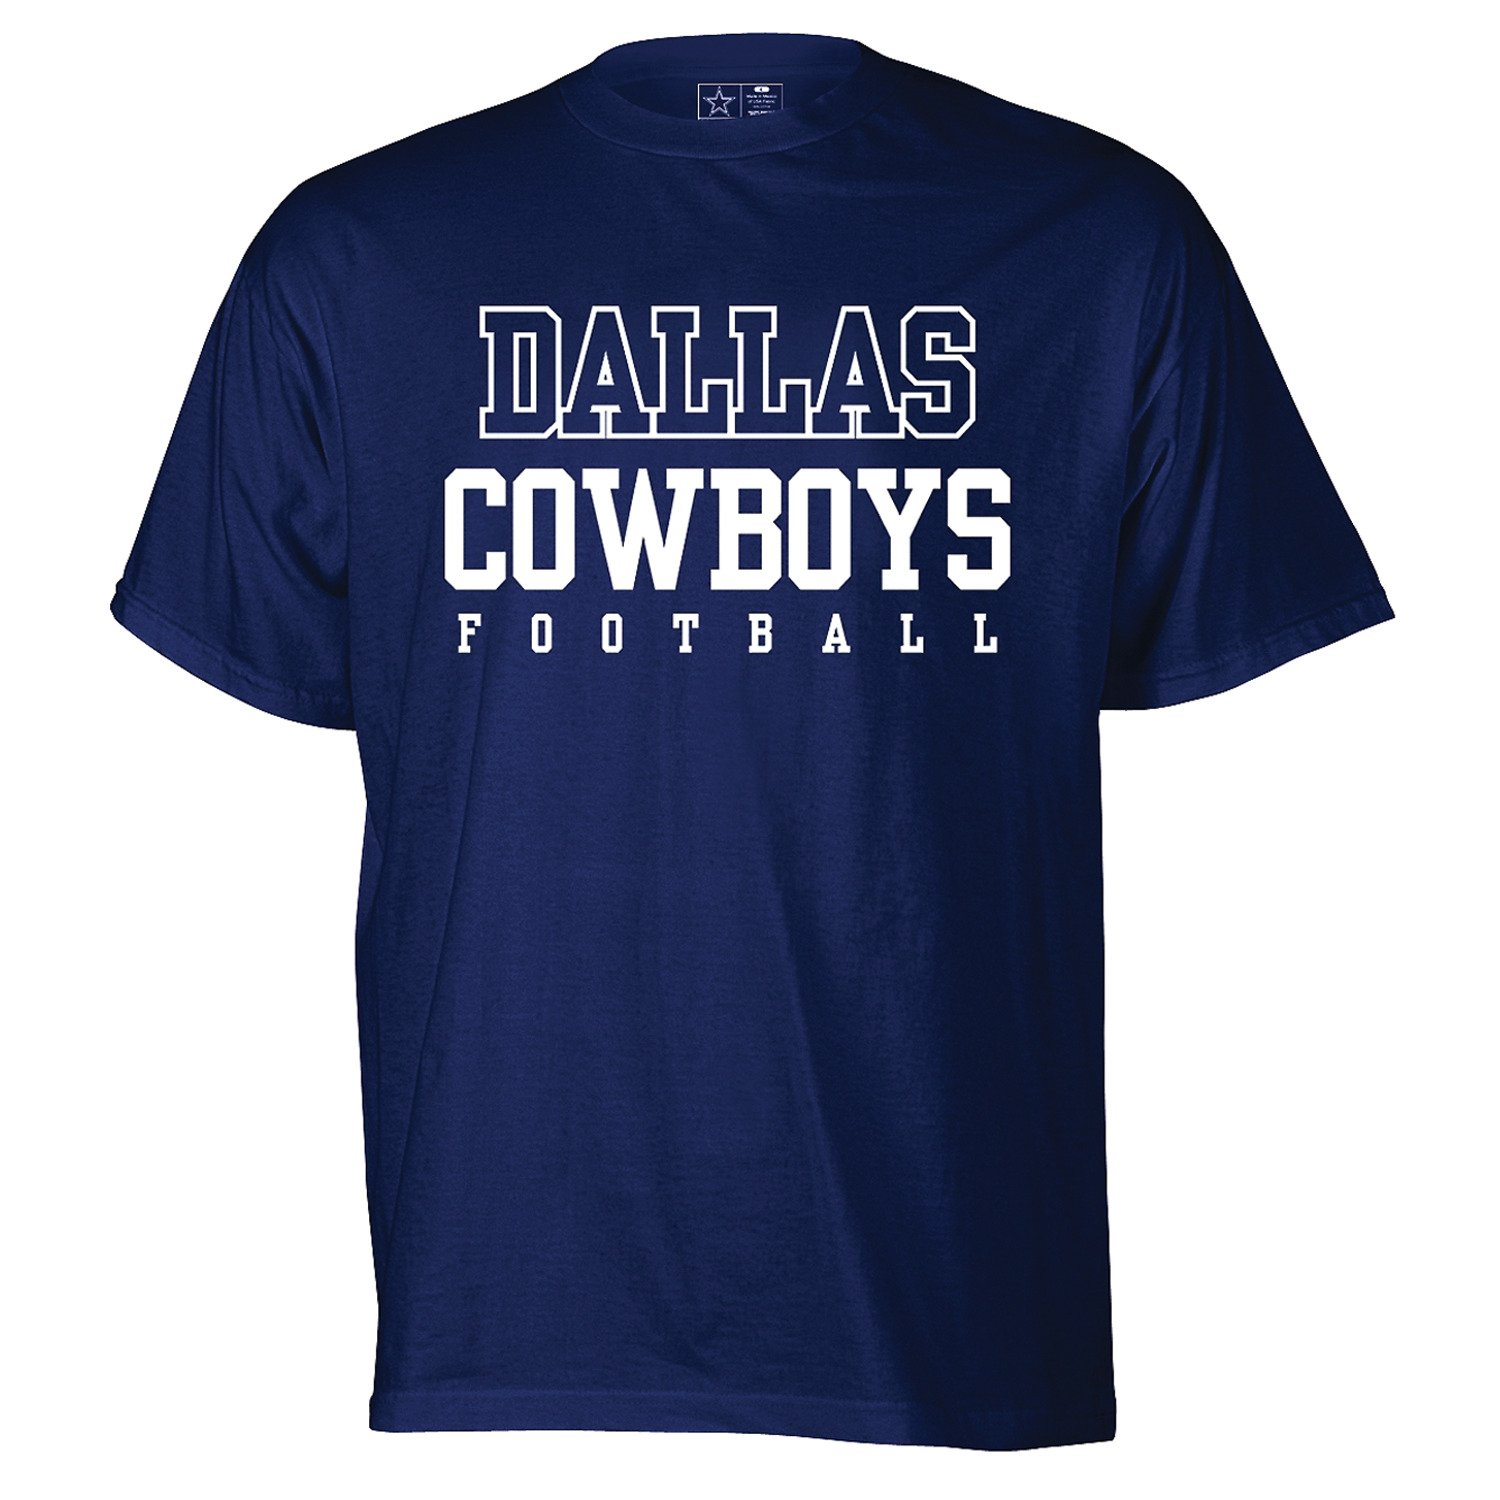 discount dallas cowboys shirts